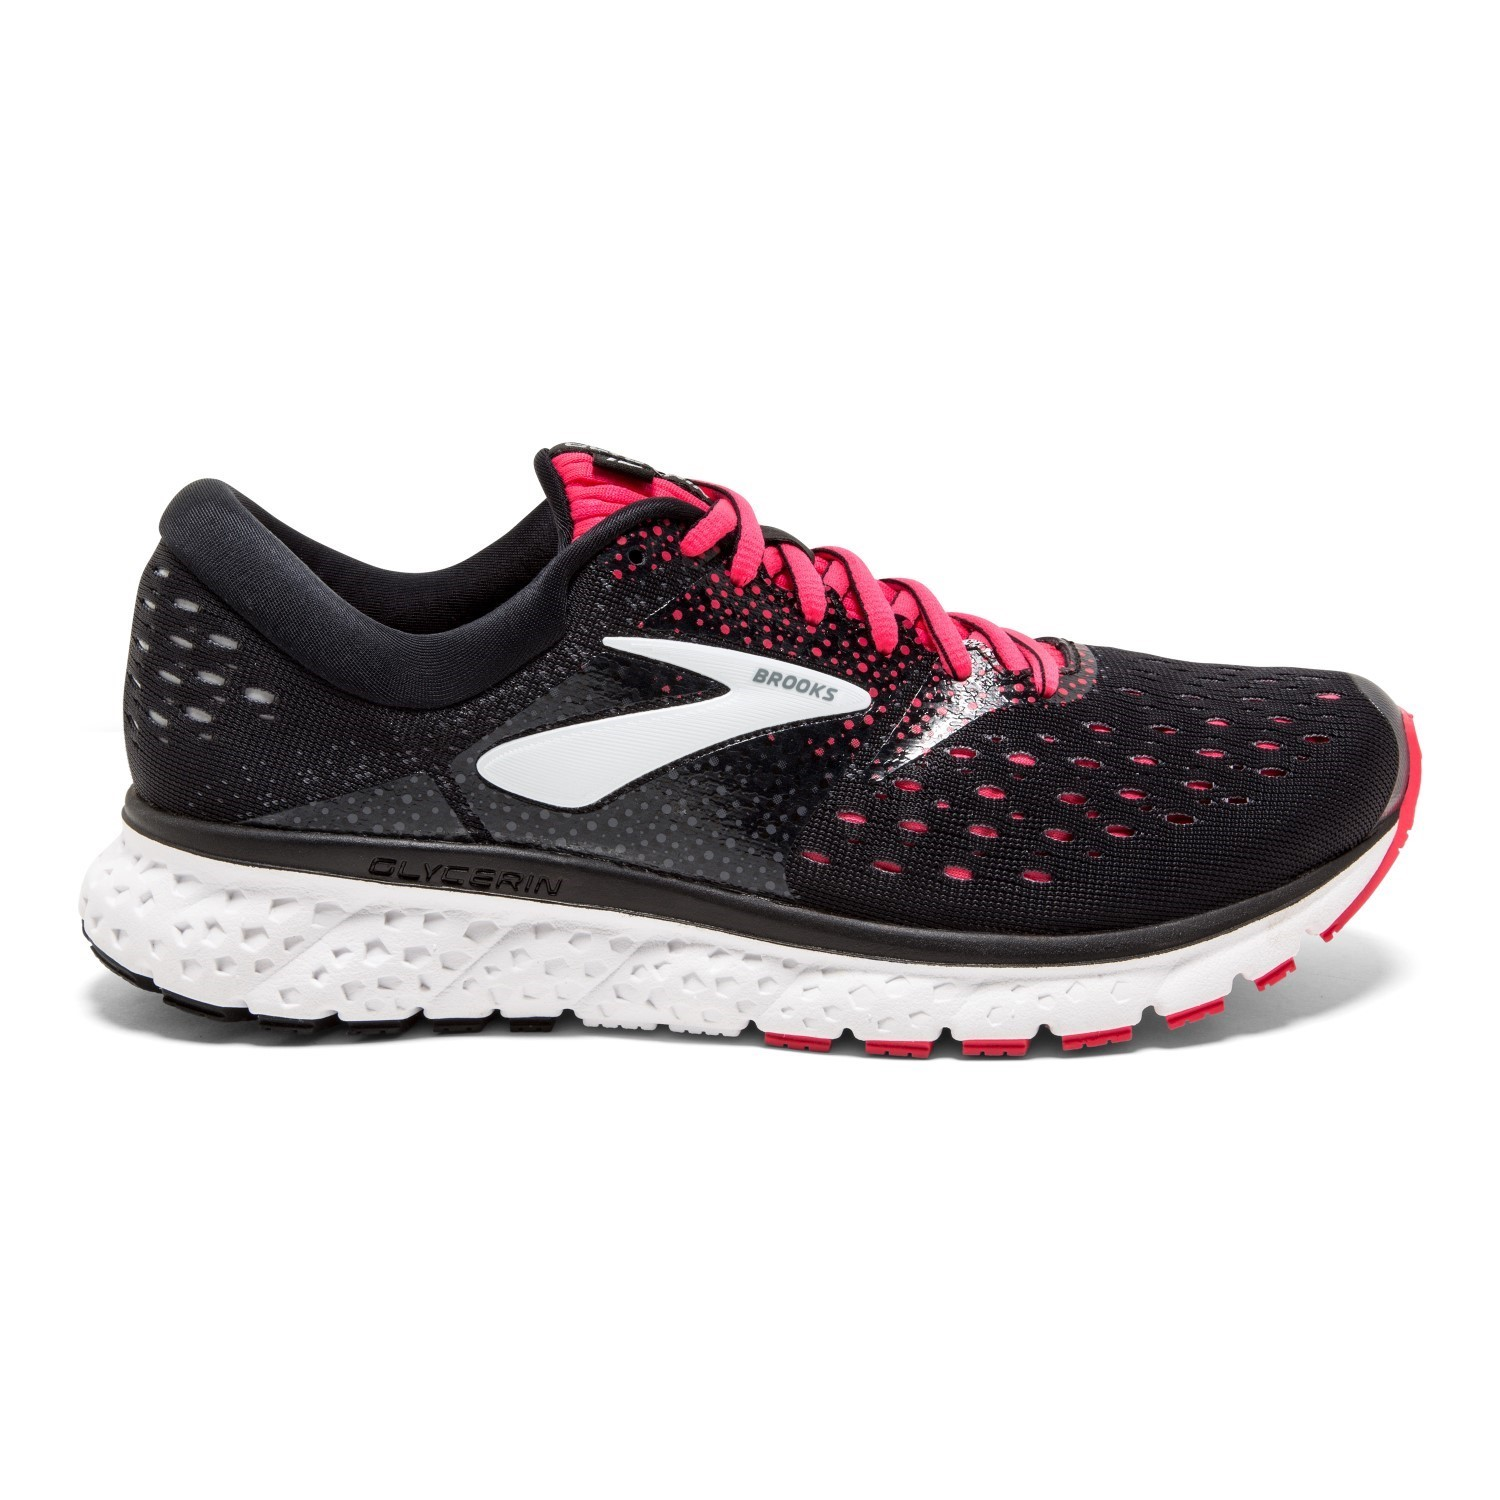 ec3c7cb268a Brooks Glycerin 16 - Womens Running Shoes - Black Pink Grey